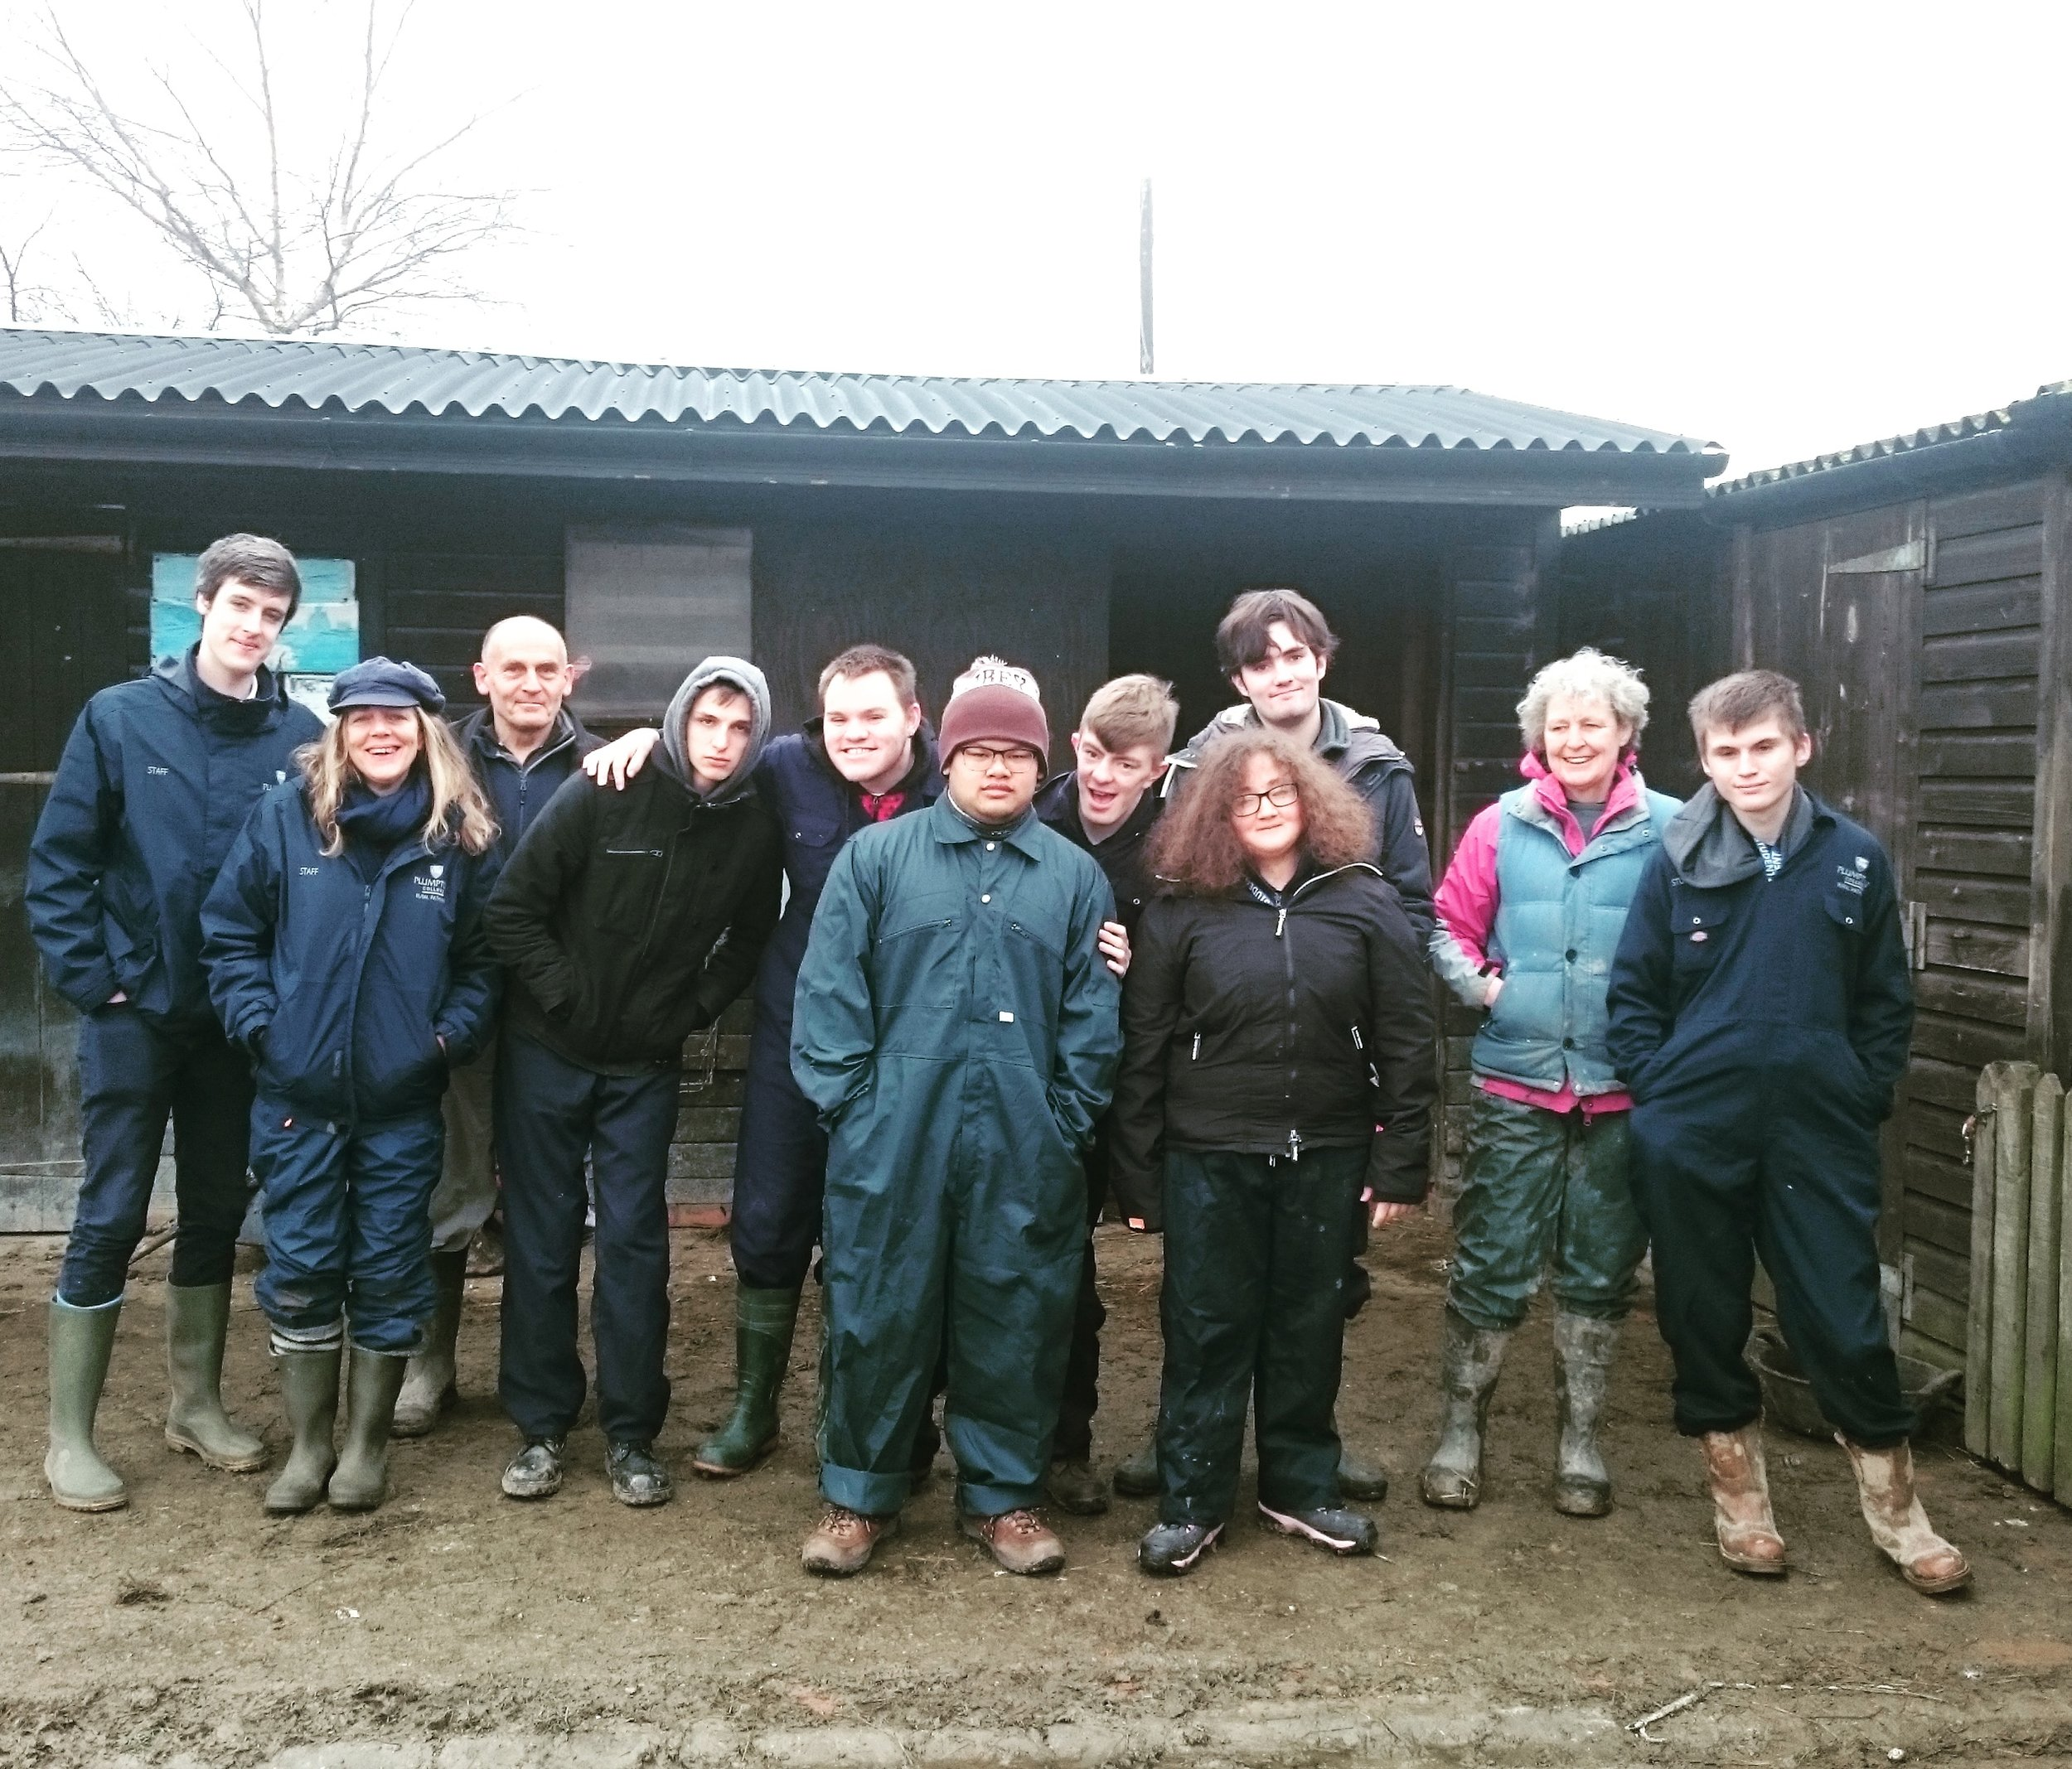 The new Rural Pathways group